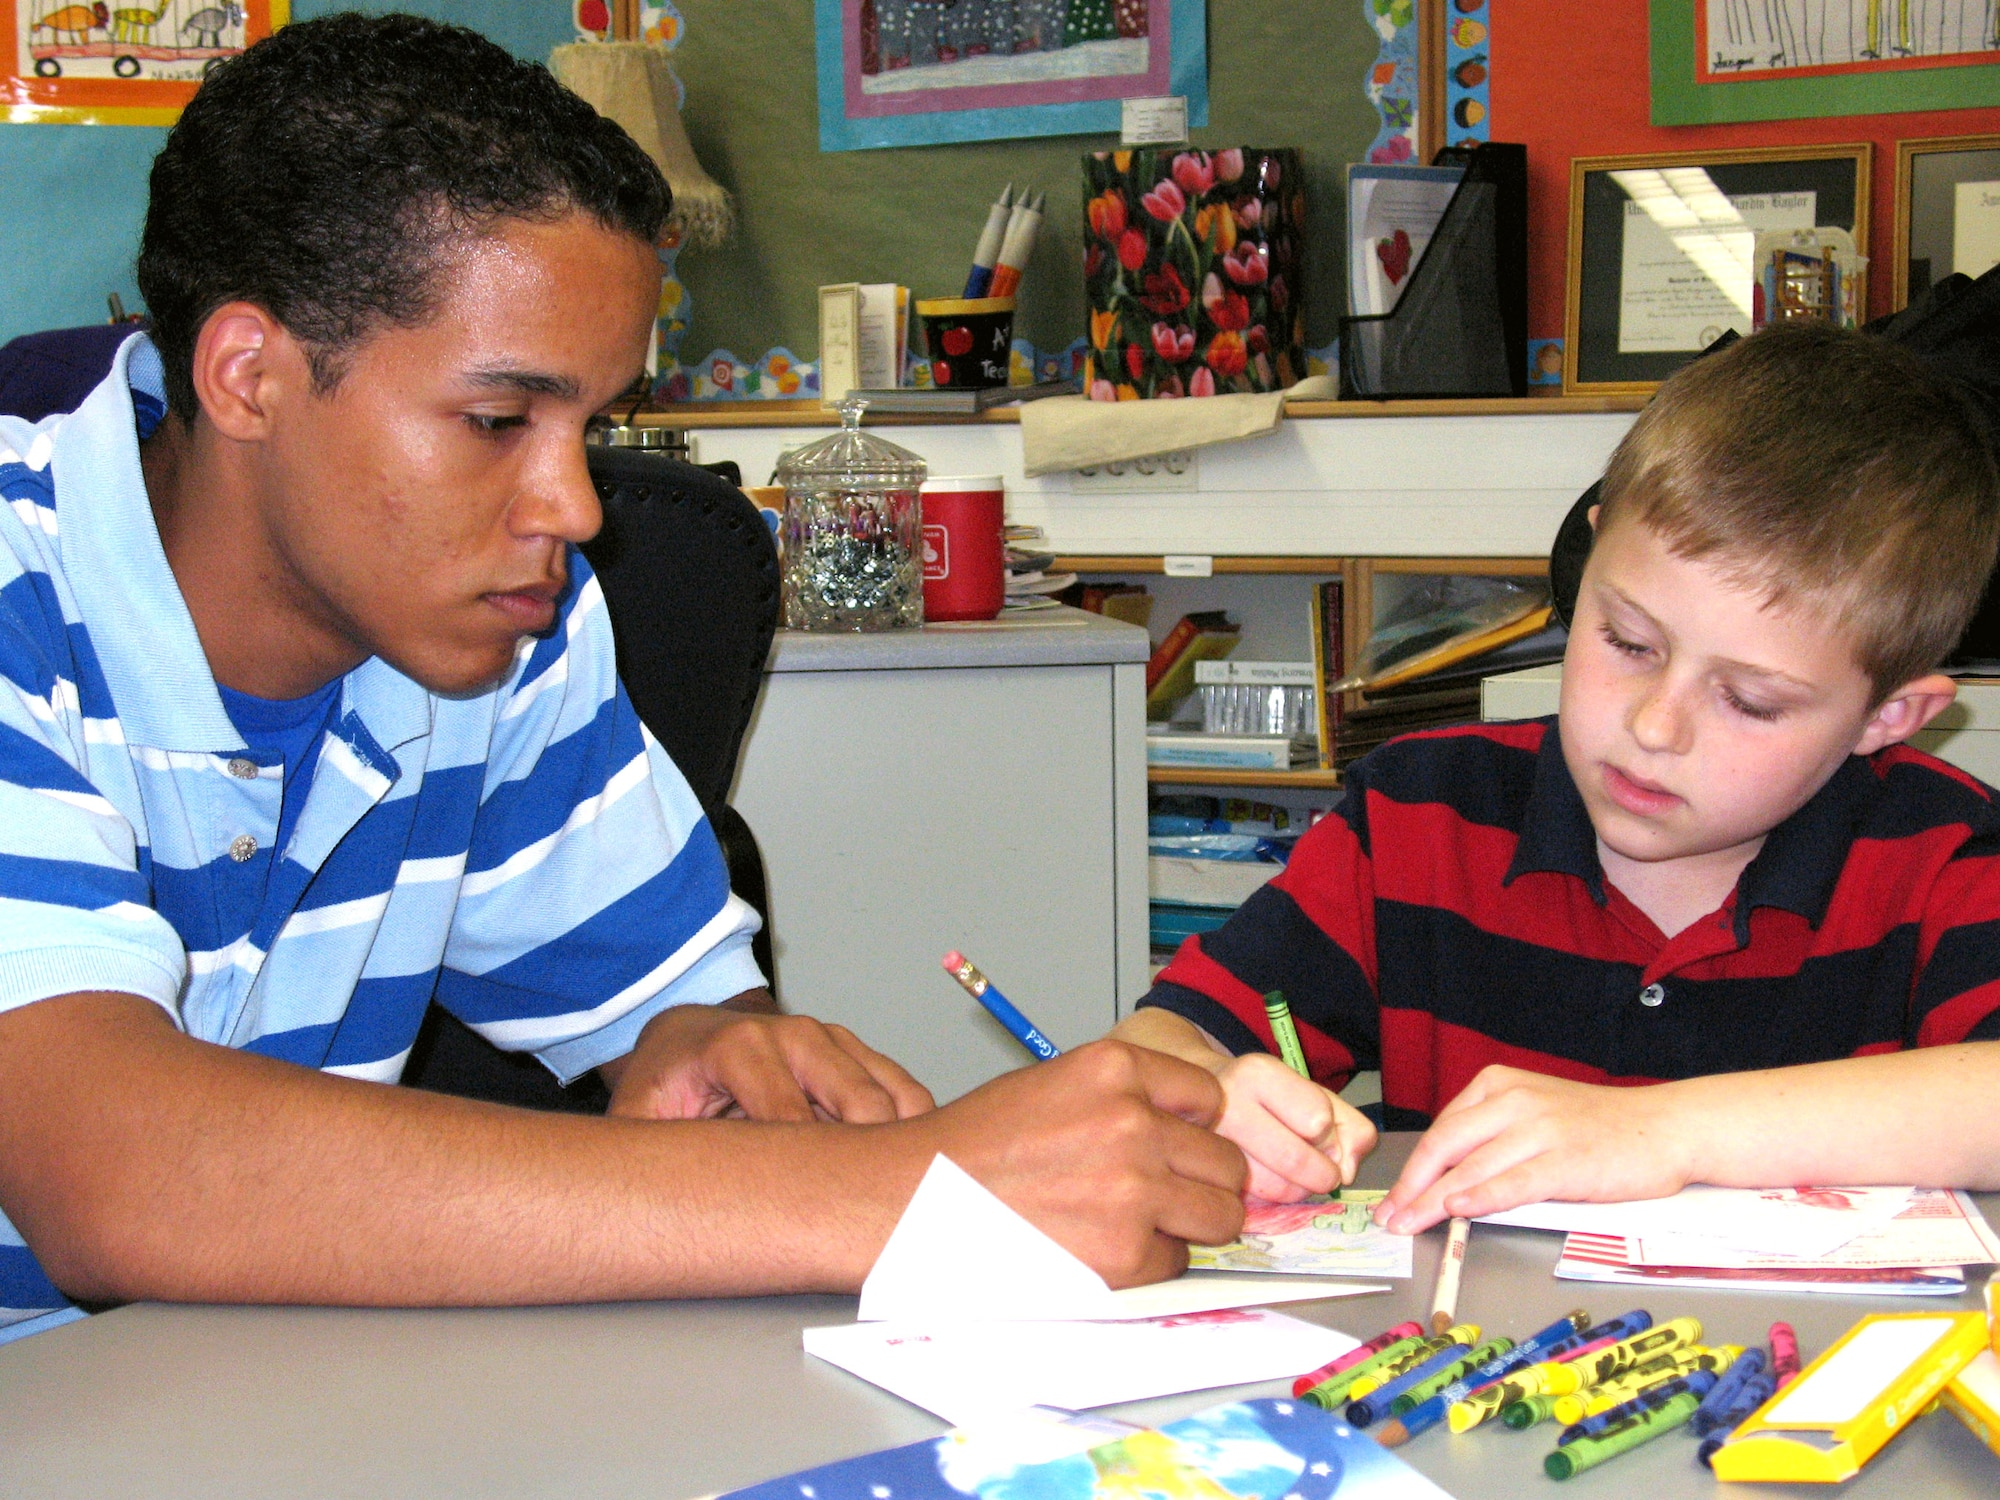 """Brice Relaford helps Caleb Parrish draw a card for his father April 26 at Ramstein Air Base, Germany. Brice and Caleb are """"Deployment Buddies,"""" which is a program for high school and elementary school students who have parents that have deployed or will deploy. The buddies pair up and spend a day doing activities such as making cards for their parents, dancing the """"Hokey Pokey"""" and playing games. The event happens once a month. Brice is a Ramstein High School junior. (U.S. Air Force photo/Staff Sgt. Leigh Bellinger)"""